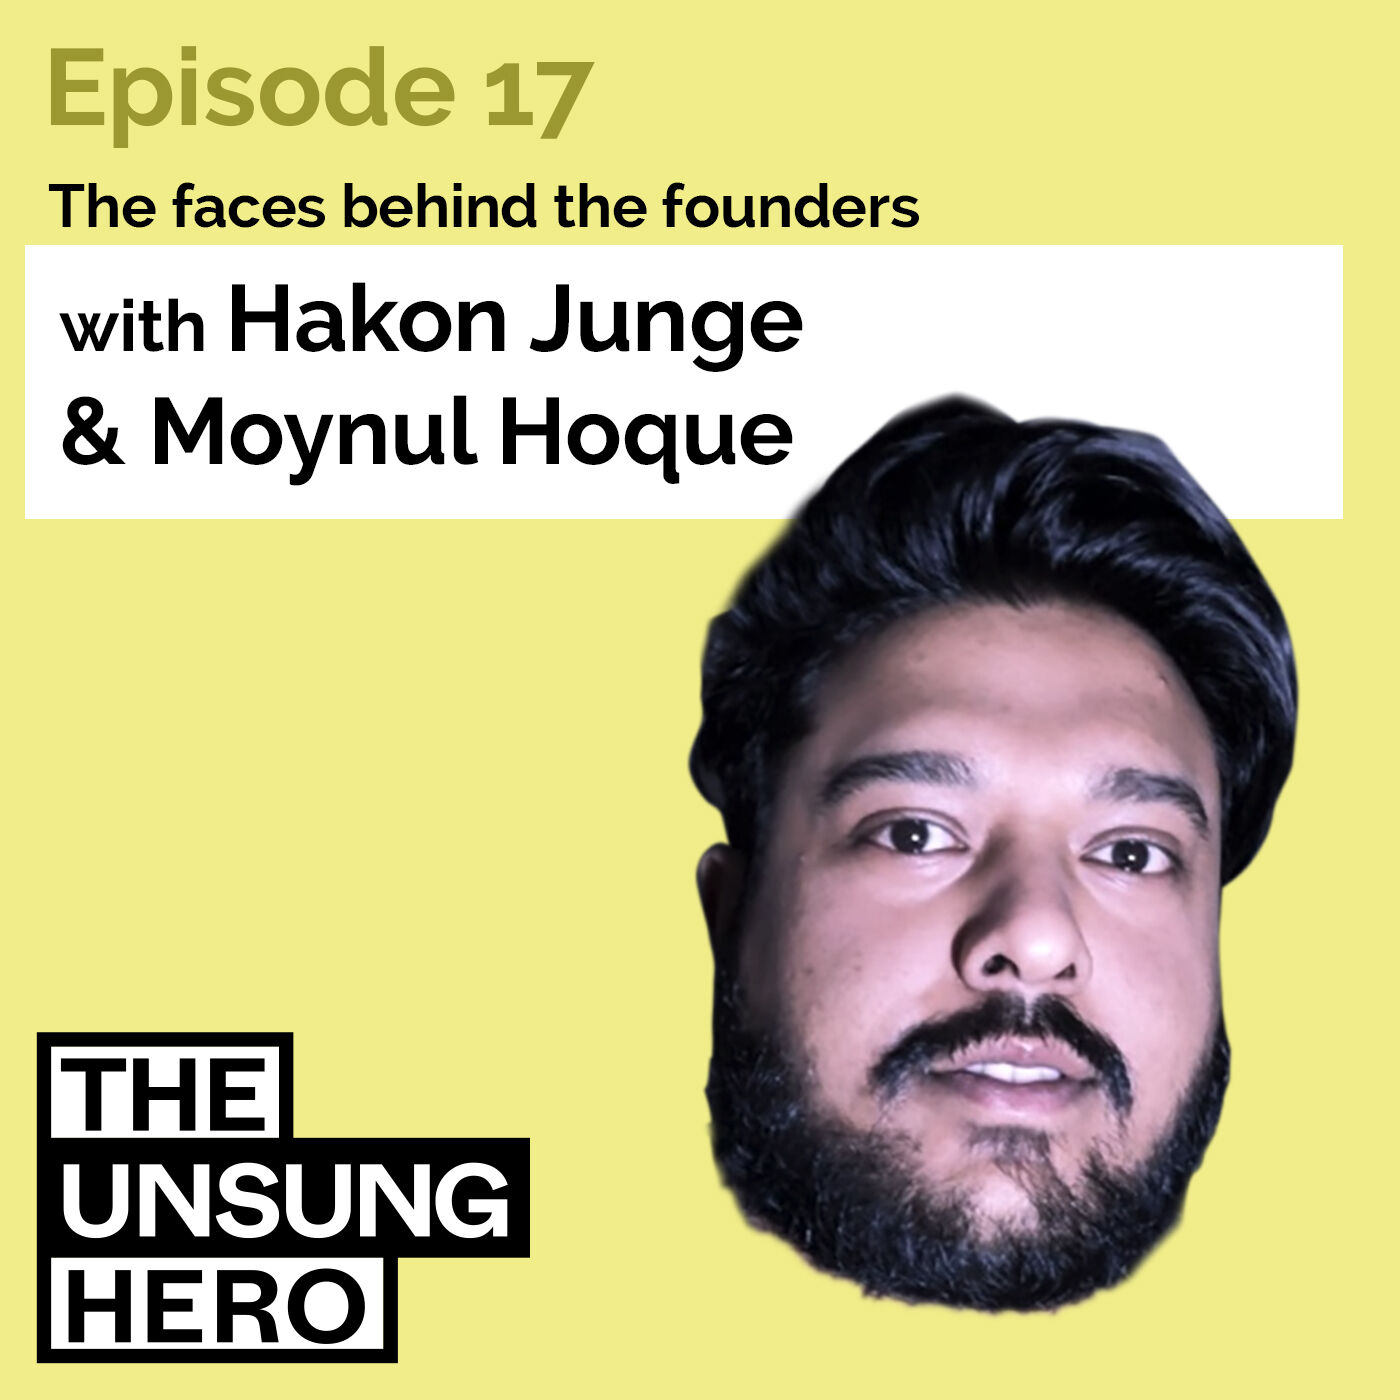 """Episode 17: """"Knowing When It's Time to Find Your Next Challenge"""" with Moynul Hoque (Previously with Drover)"""